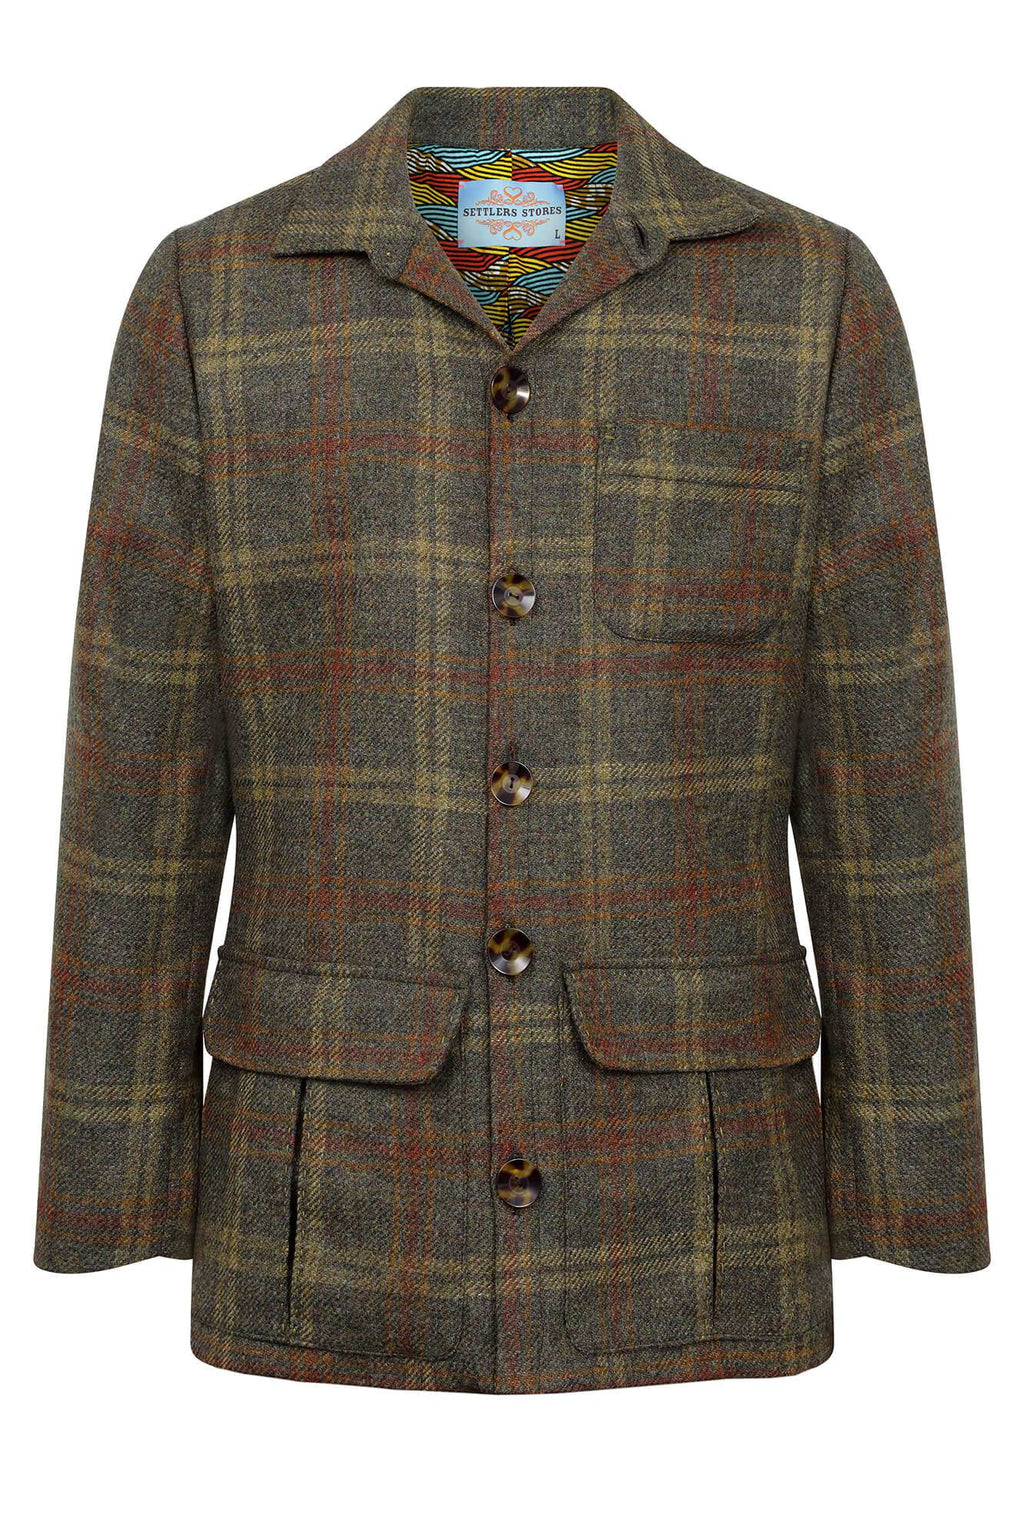 men's tailored tweed jacket